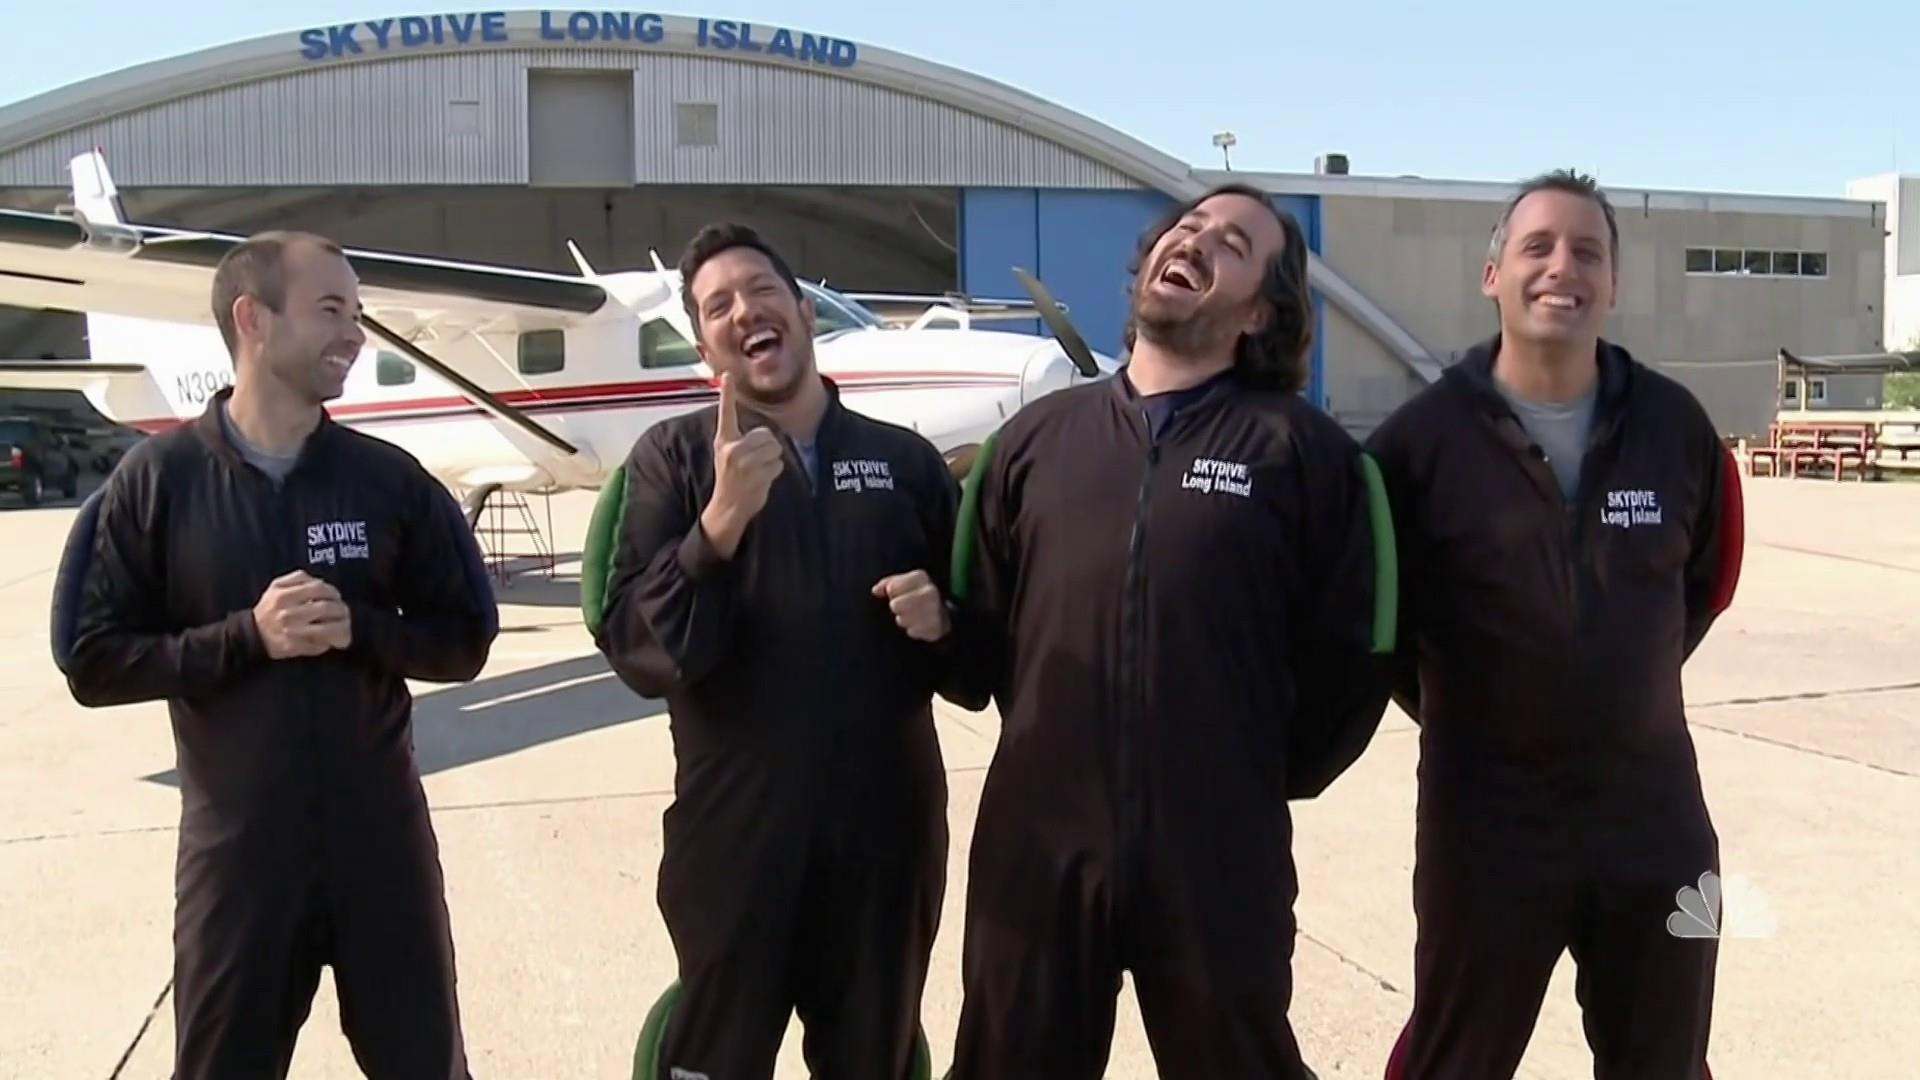 Meet the men behind 'Impractical Jokers'